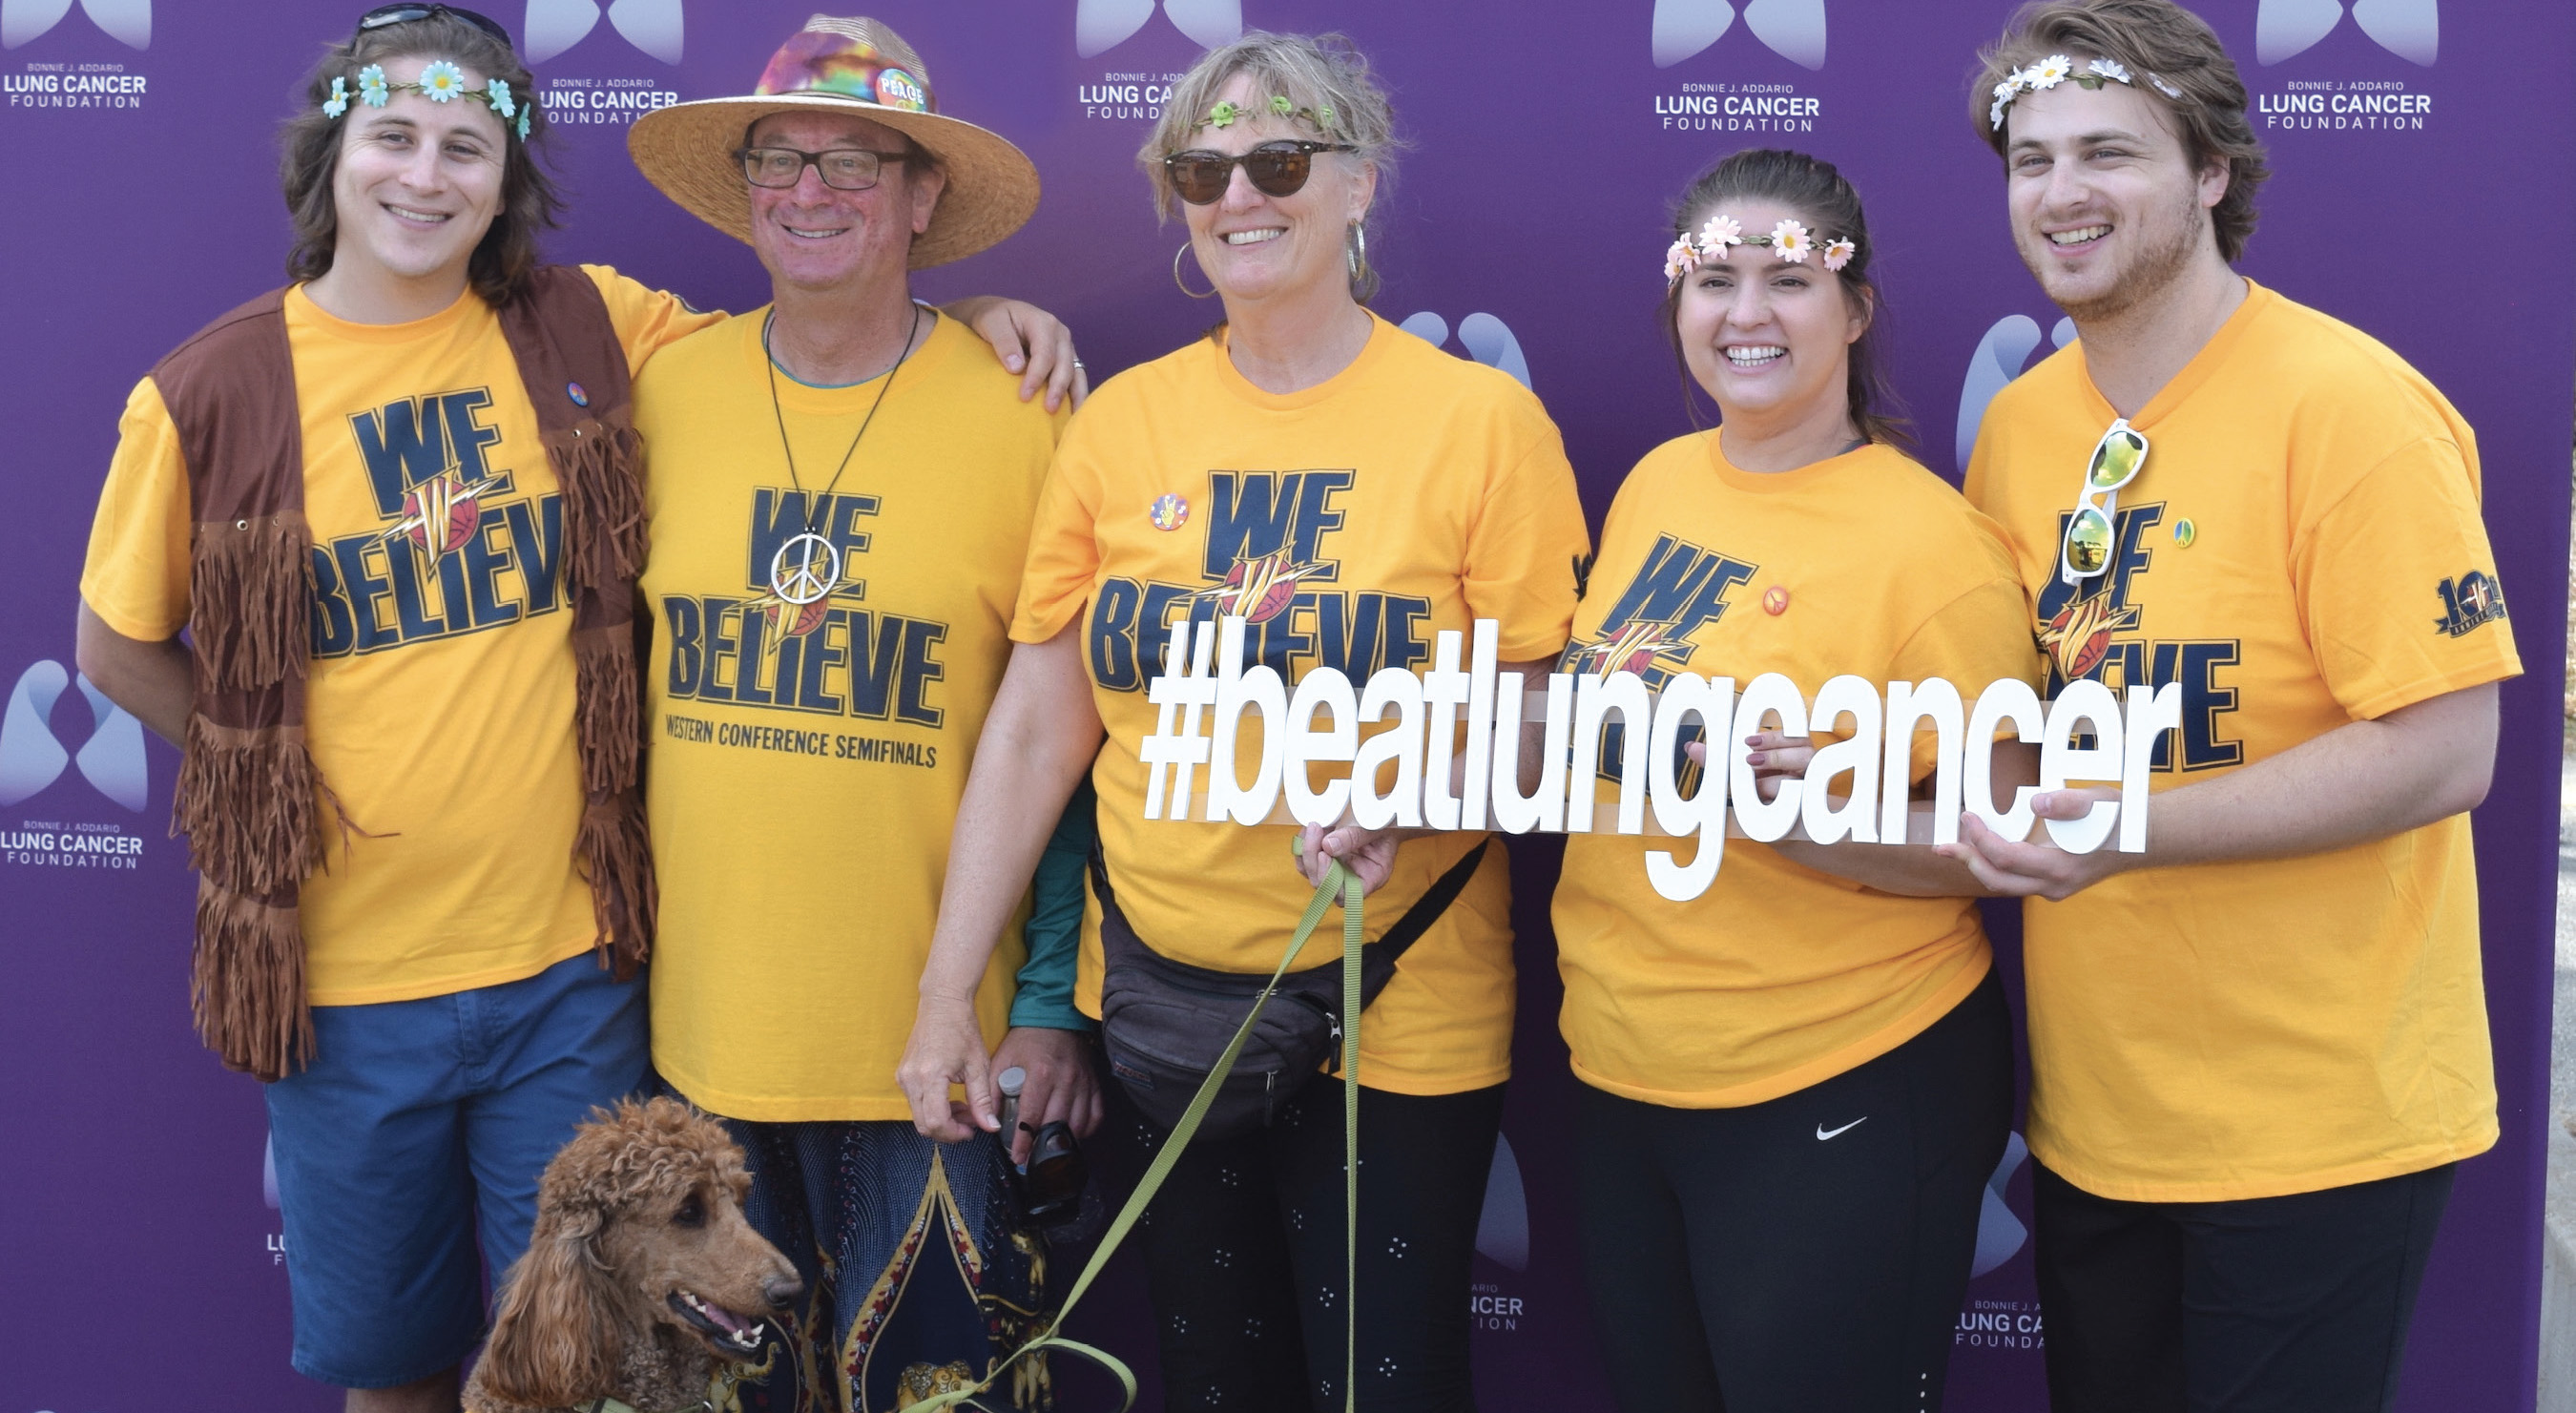 DAVE KARLIN (second from left) celebrates with his family at the Bonnie J. Addario Lung Walk/Run event in September at Lake Merced in San Francisco. - COURTESY DAVE KARLIN